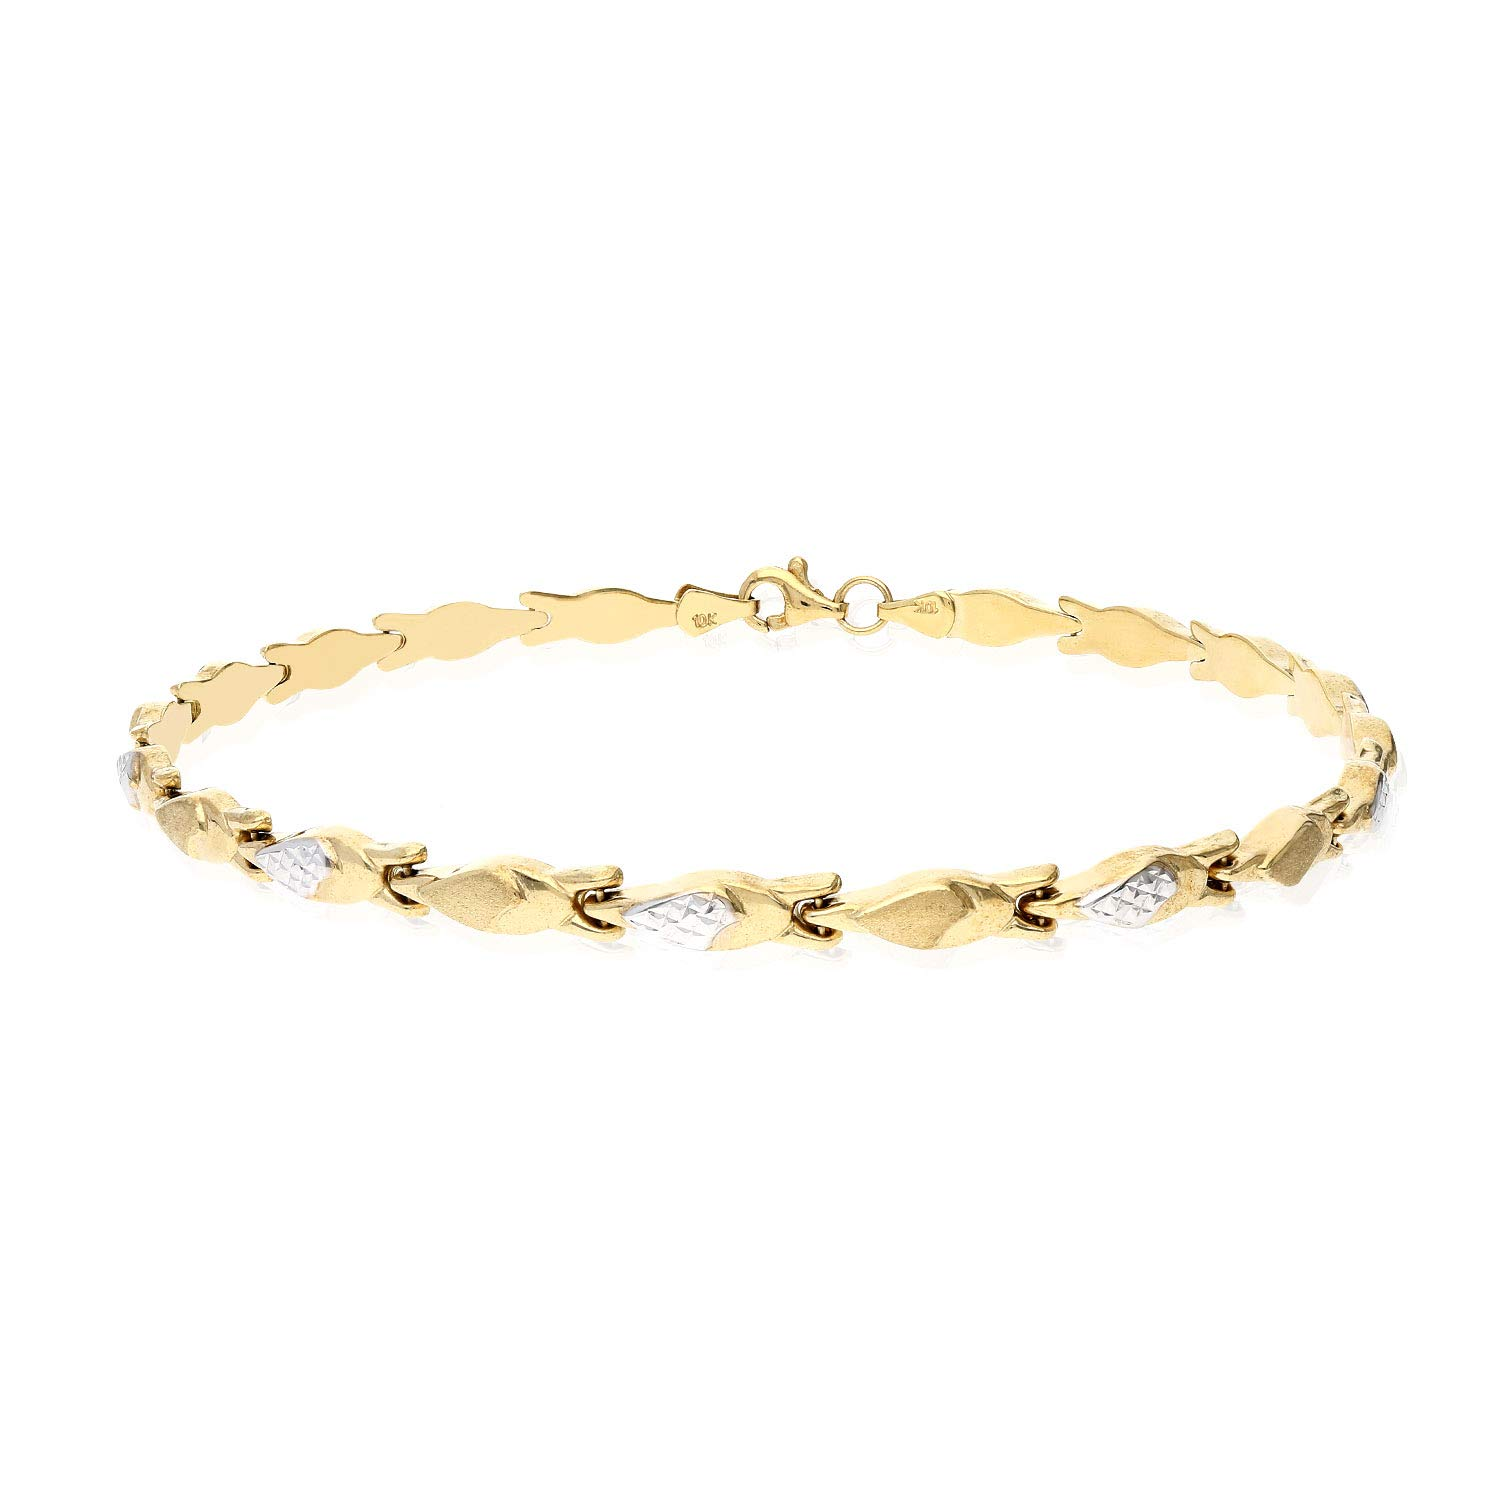 10K Two-Tone Yellow White Gold 4.5mm Hollow Fancy Stampato Link Ankle Bracelet